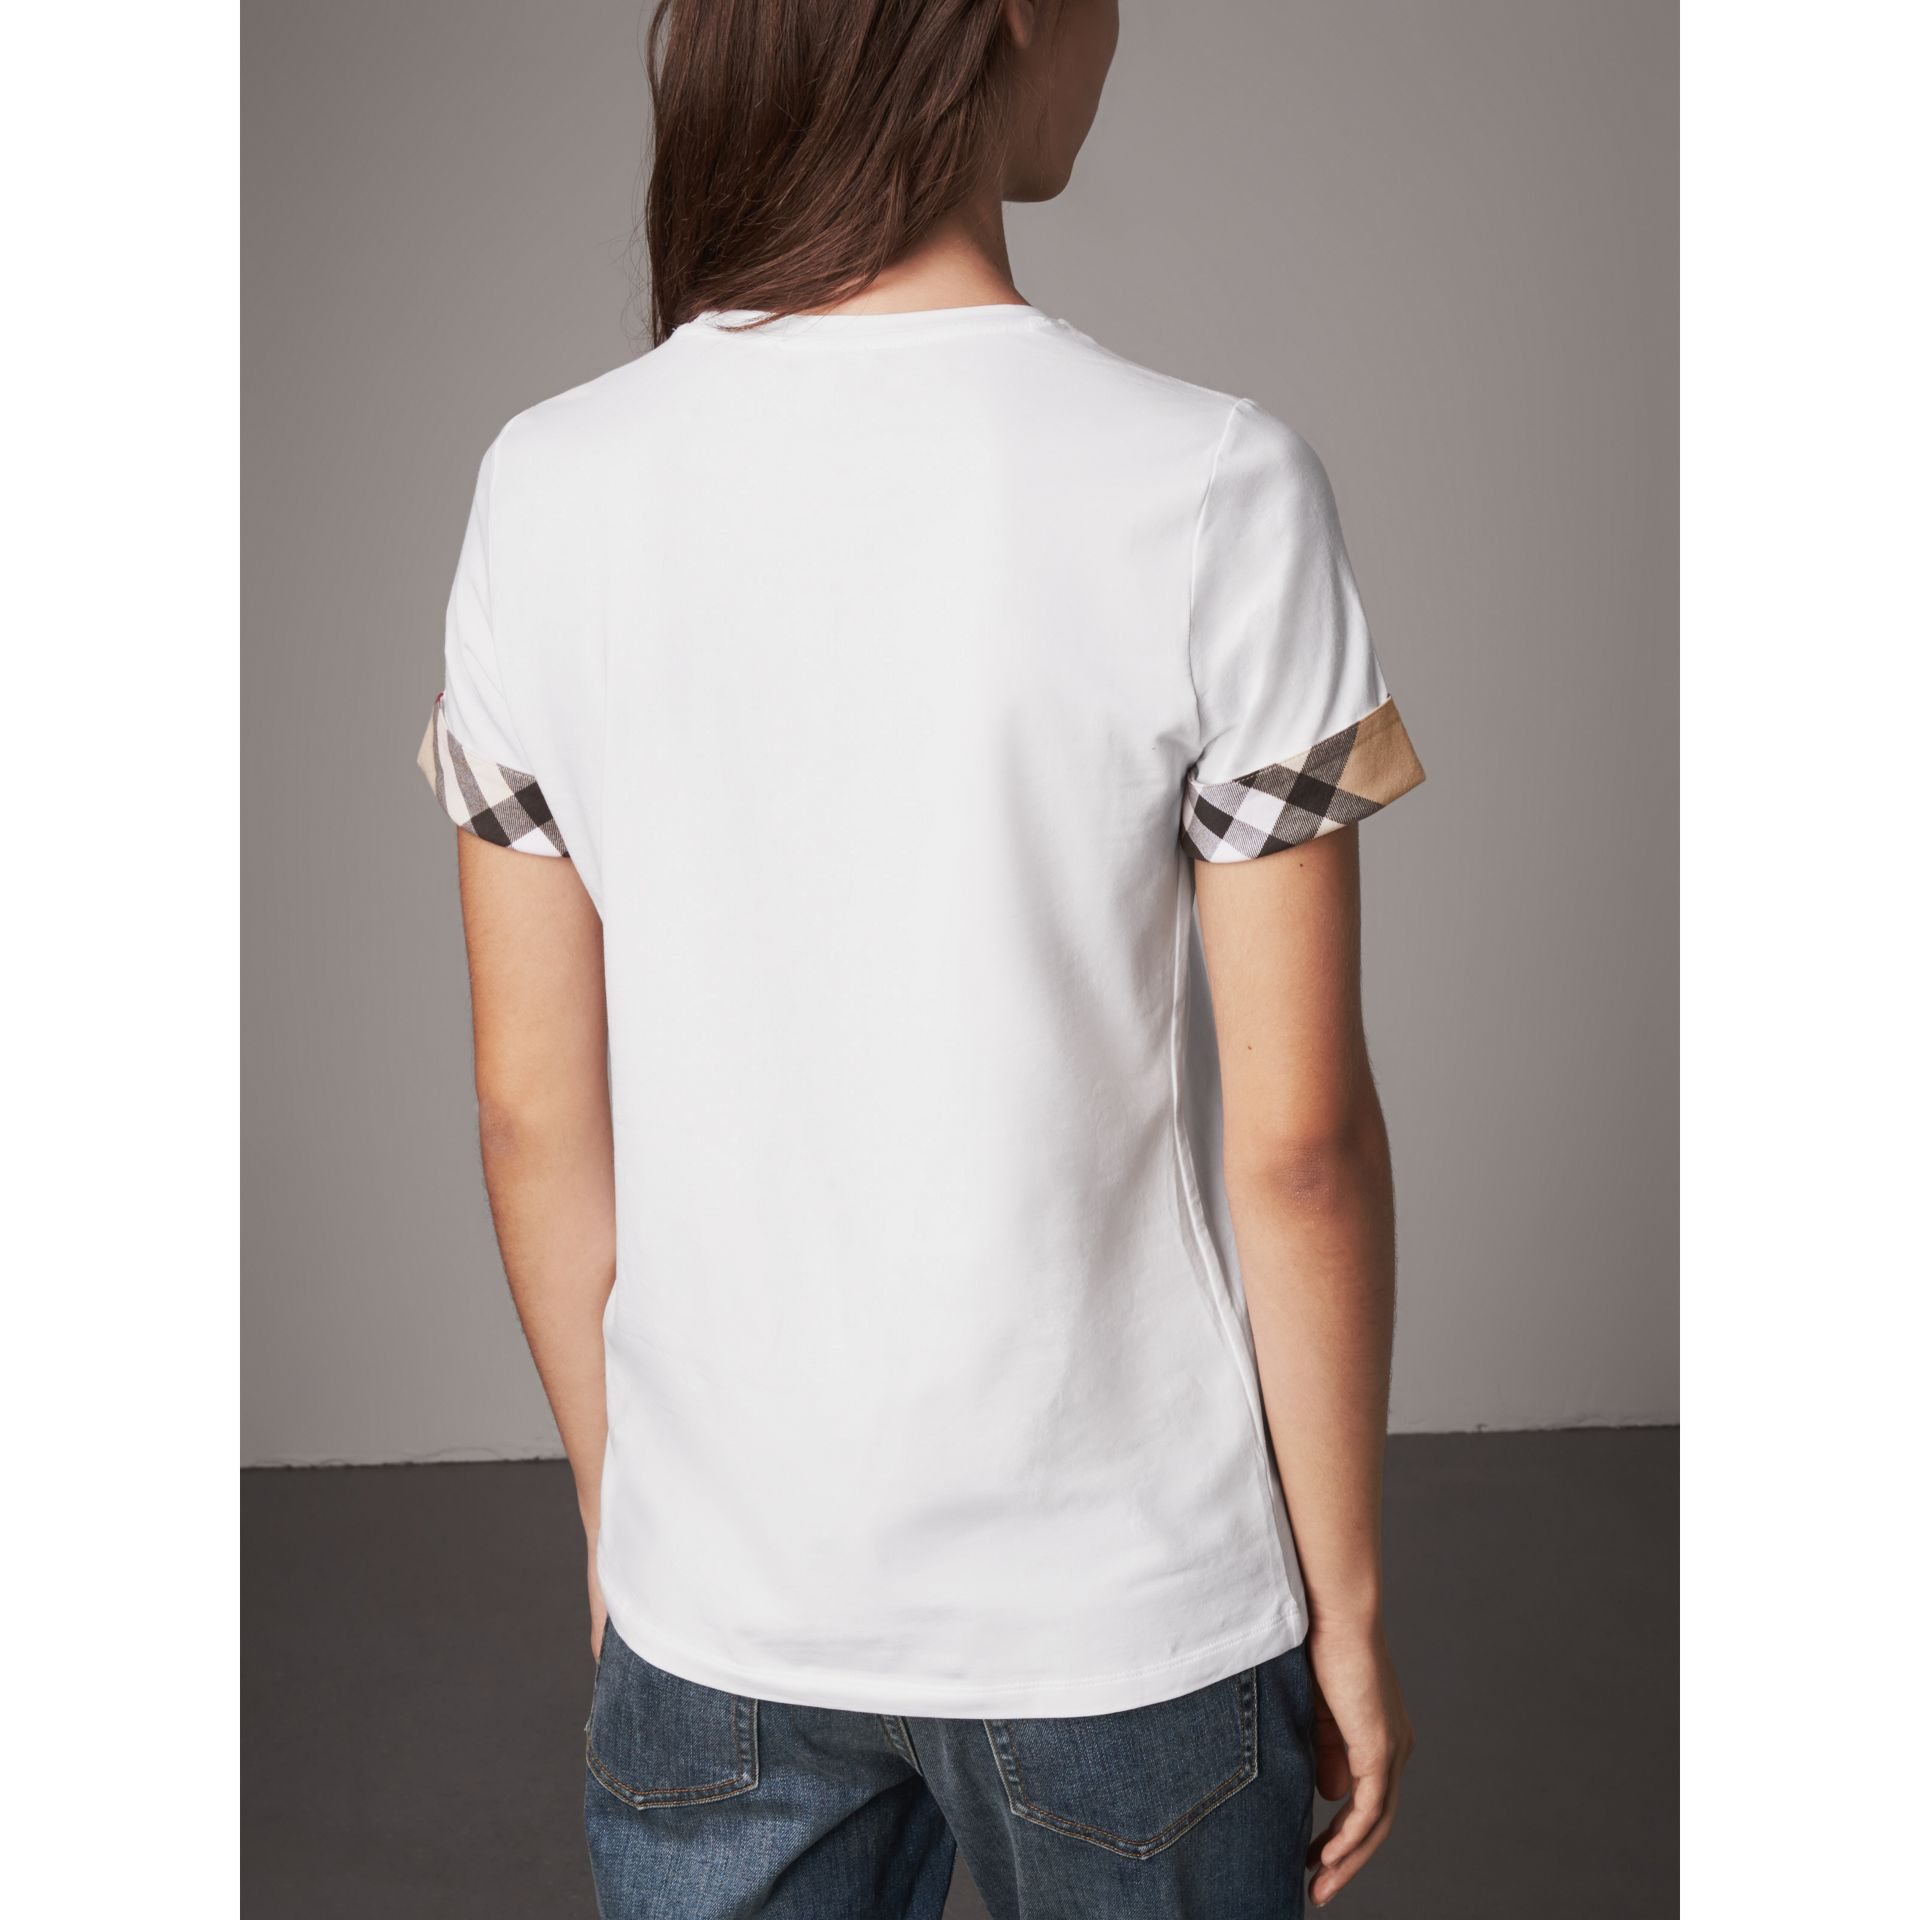 T-shirt en coton extensible avec revers à motif check (Blanc) - Femme | Burberry - photo de la galerie 2